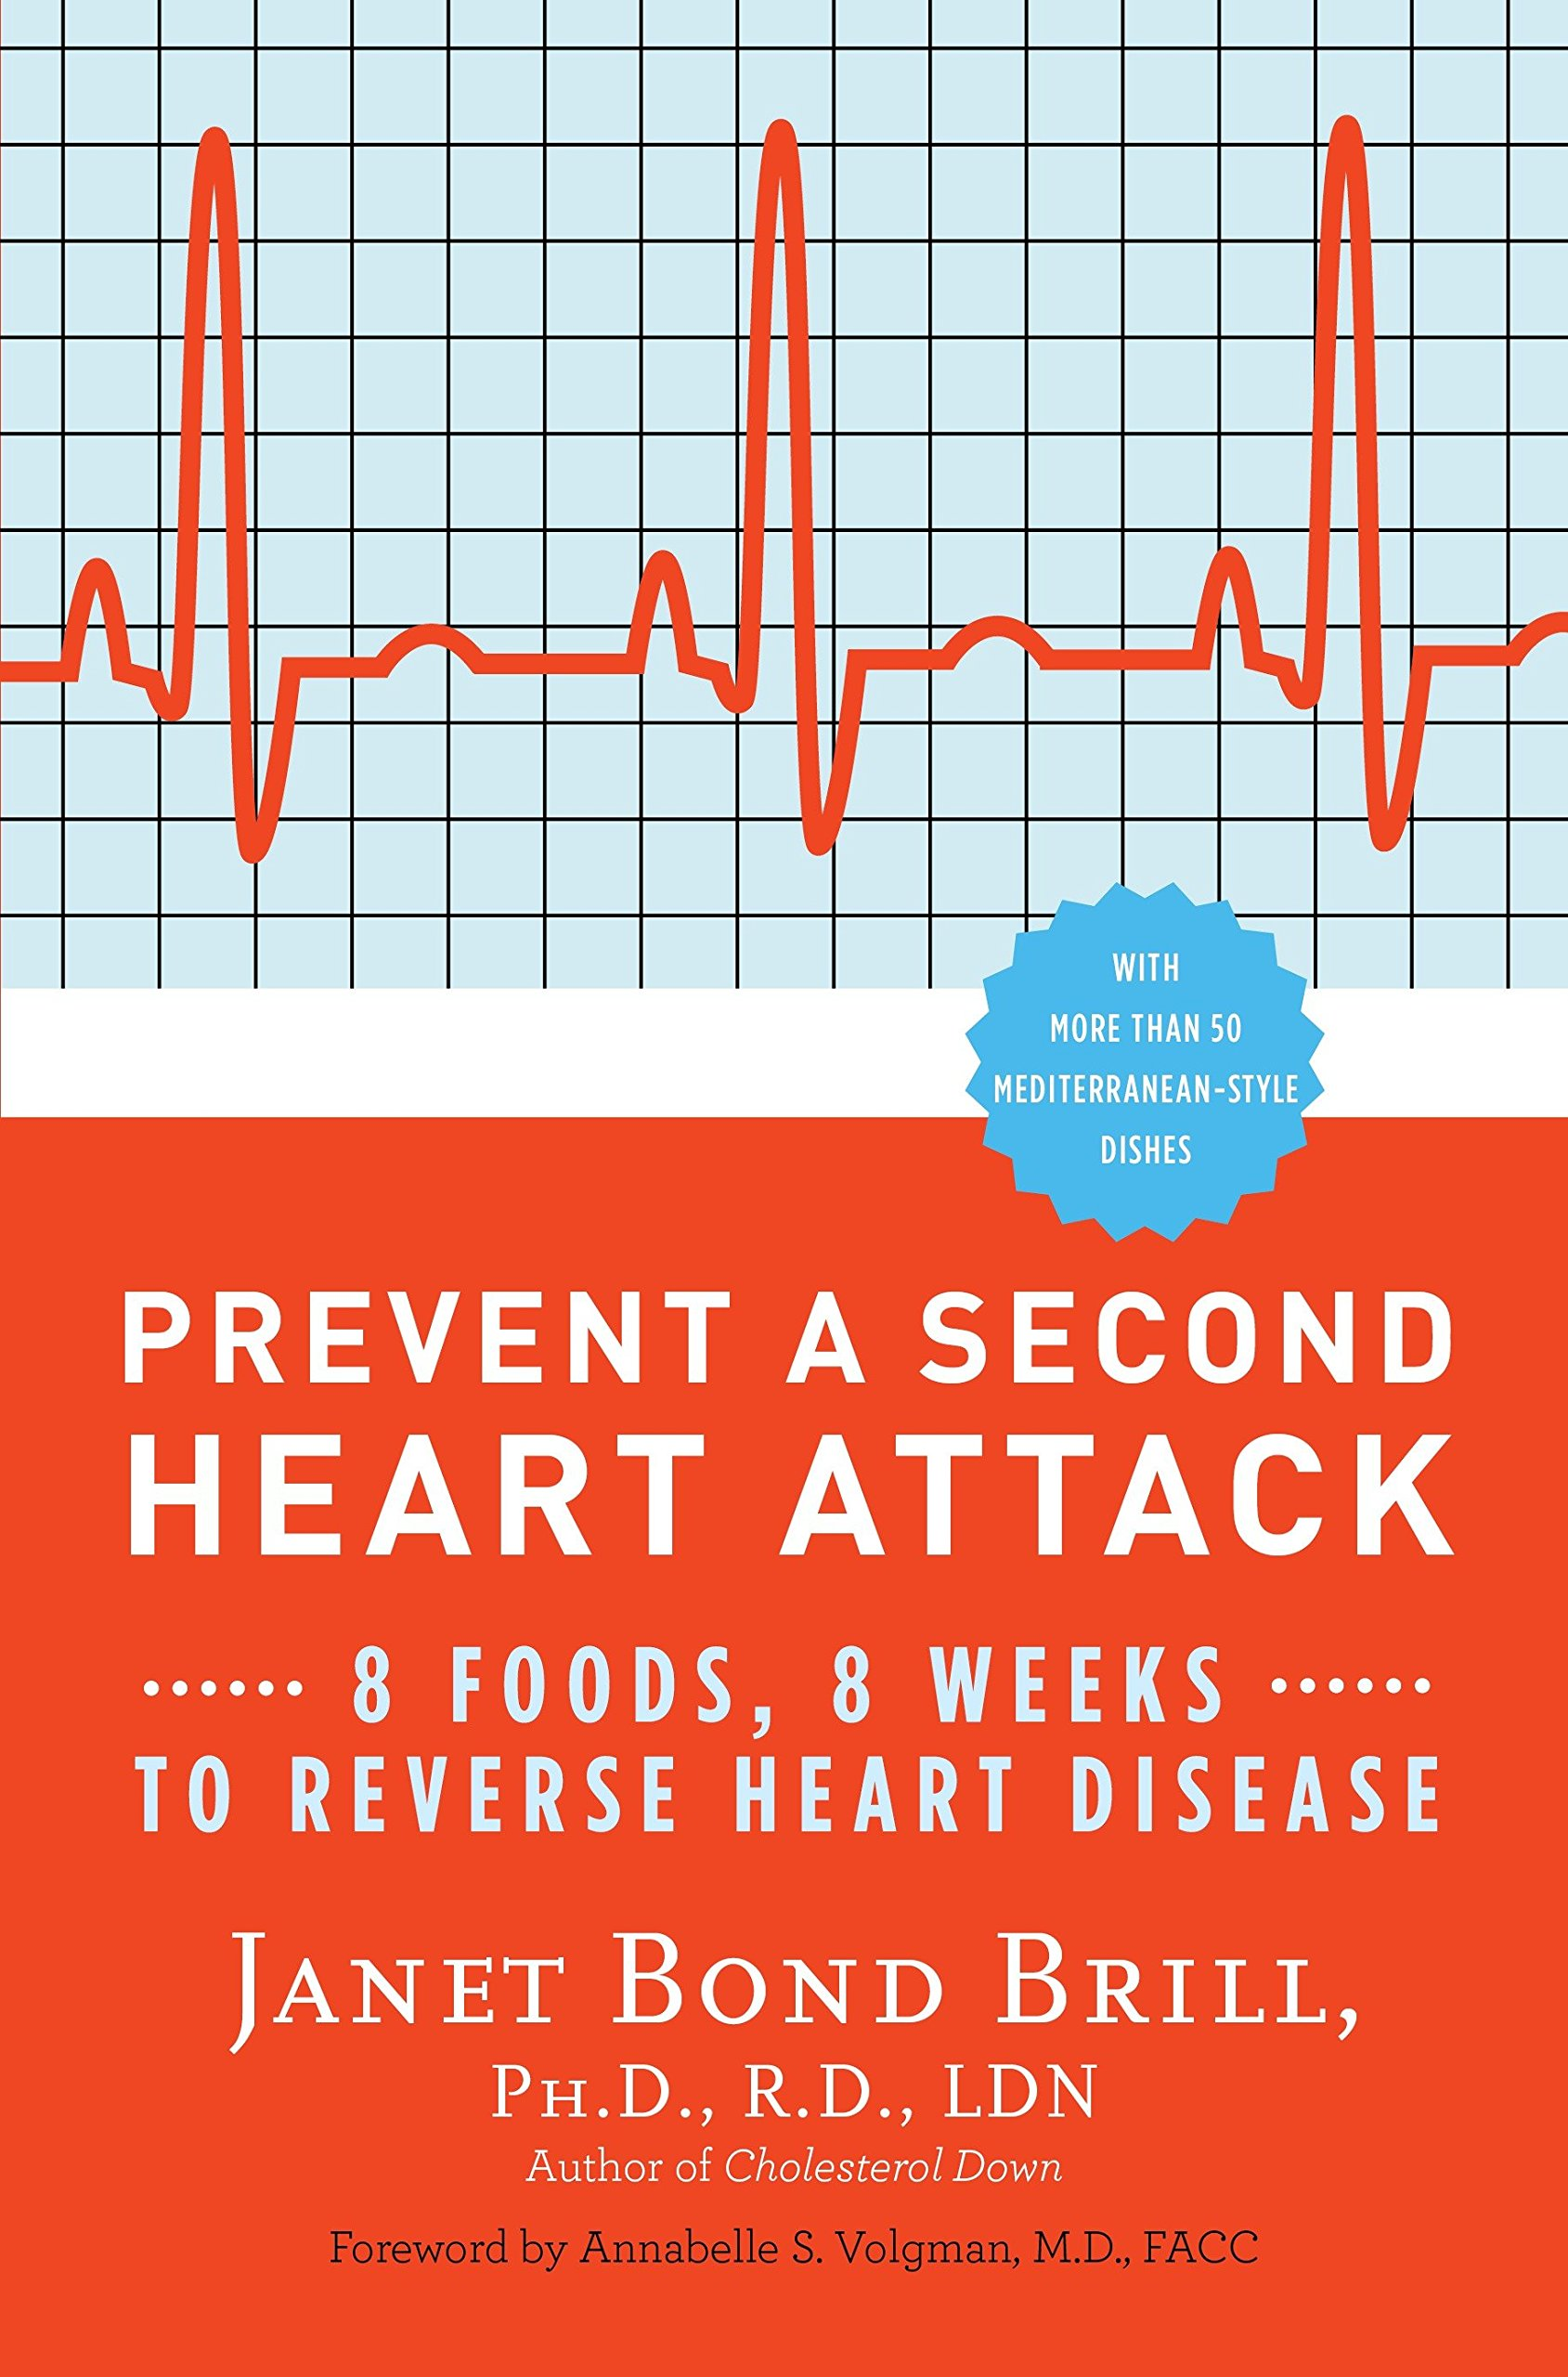 10 (Not-So-Onerous) Tips for Heart Health